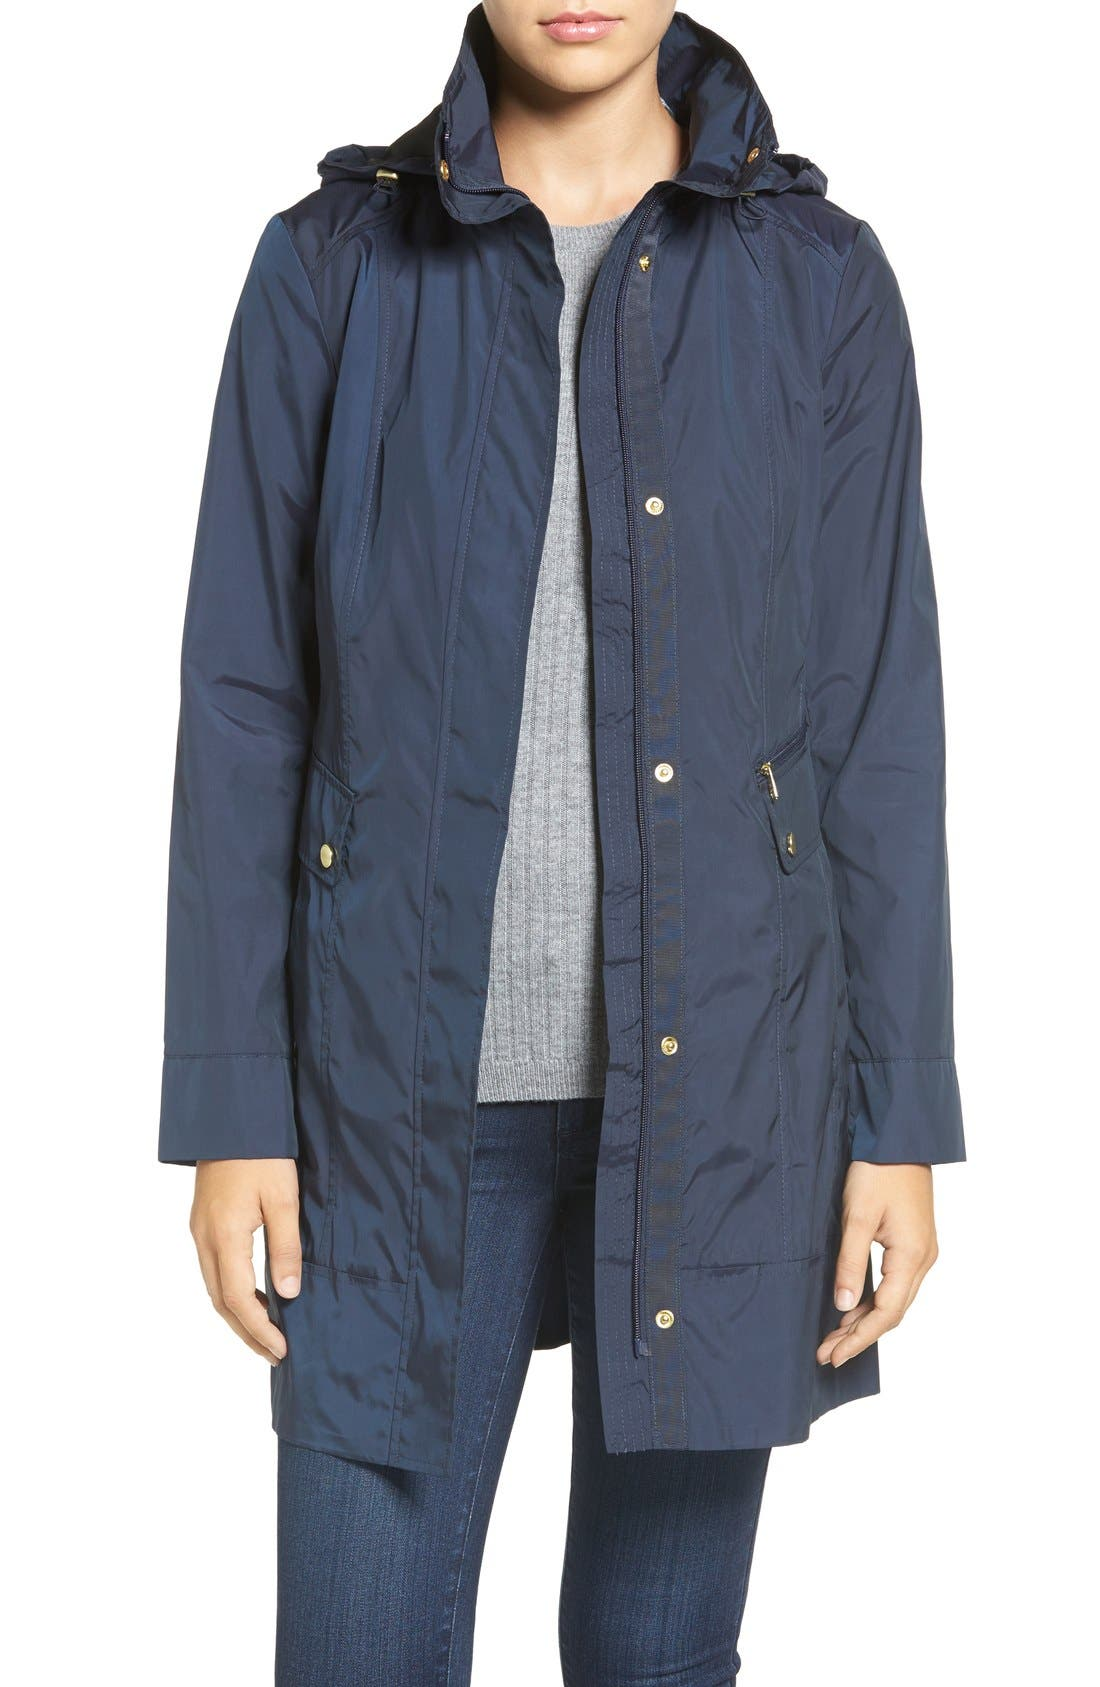 Main Image - Cole Haan Signature Back Bow Packable Hooded Raincoat (Regular & Petite)